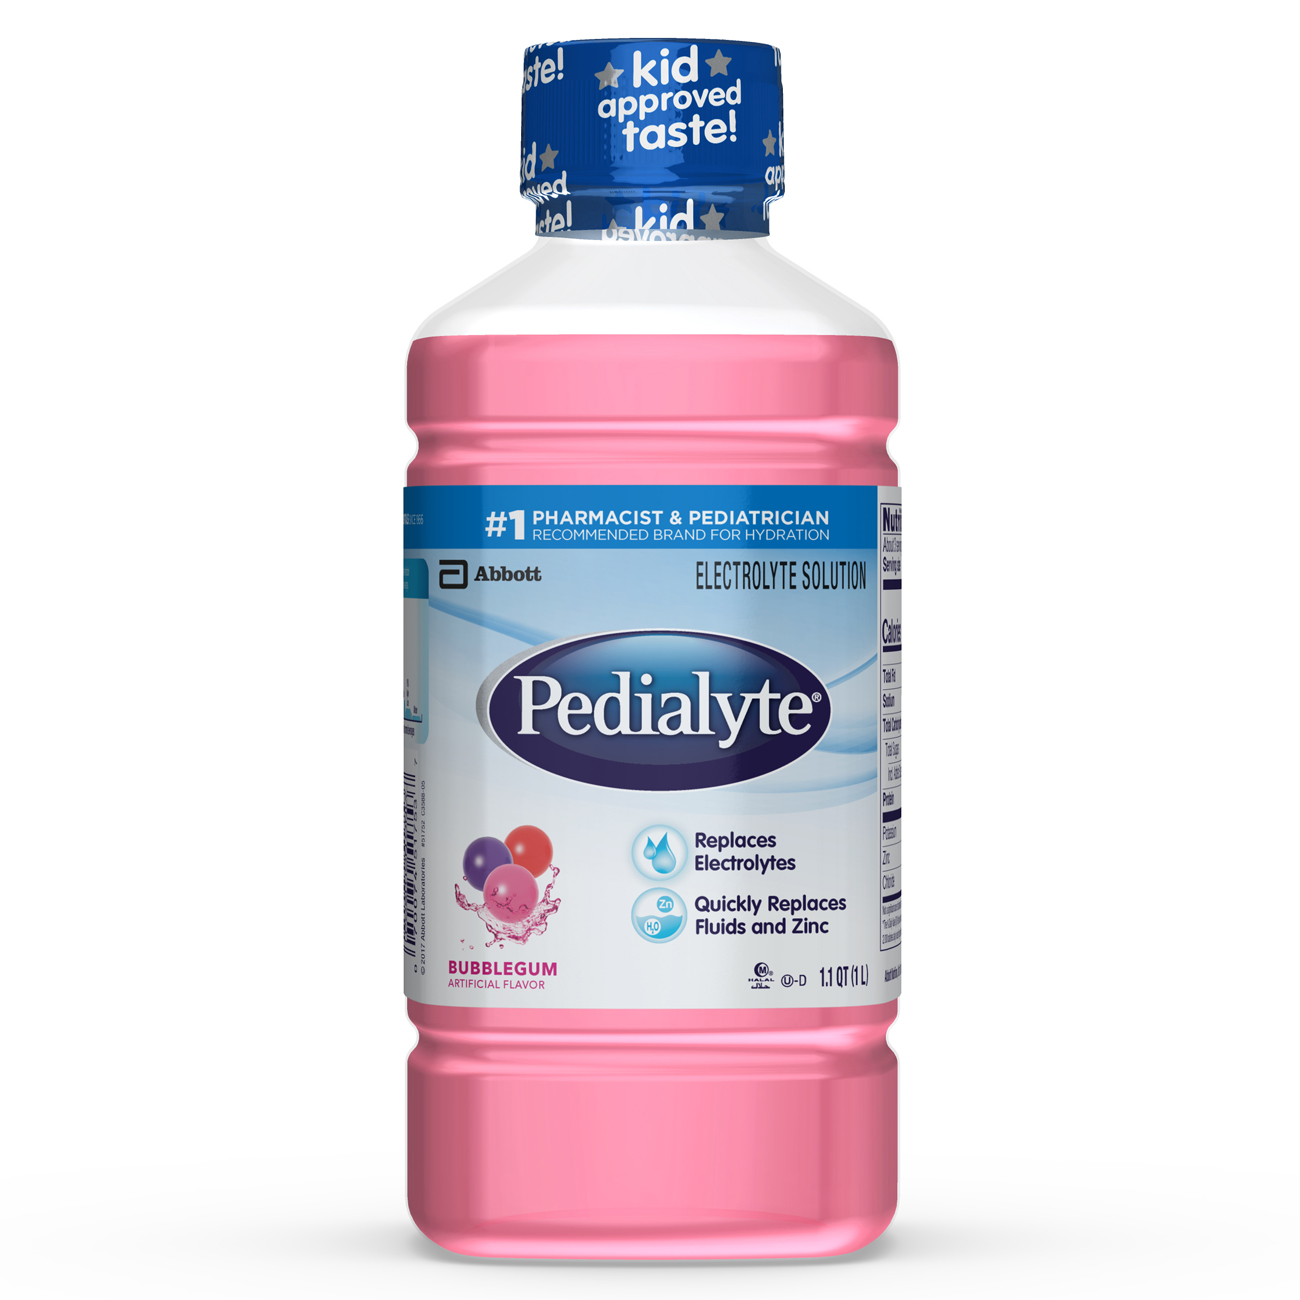 Pedialyte Electrolyte Solution, Hydration Drink, Bubble Gum, 1 Liter